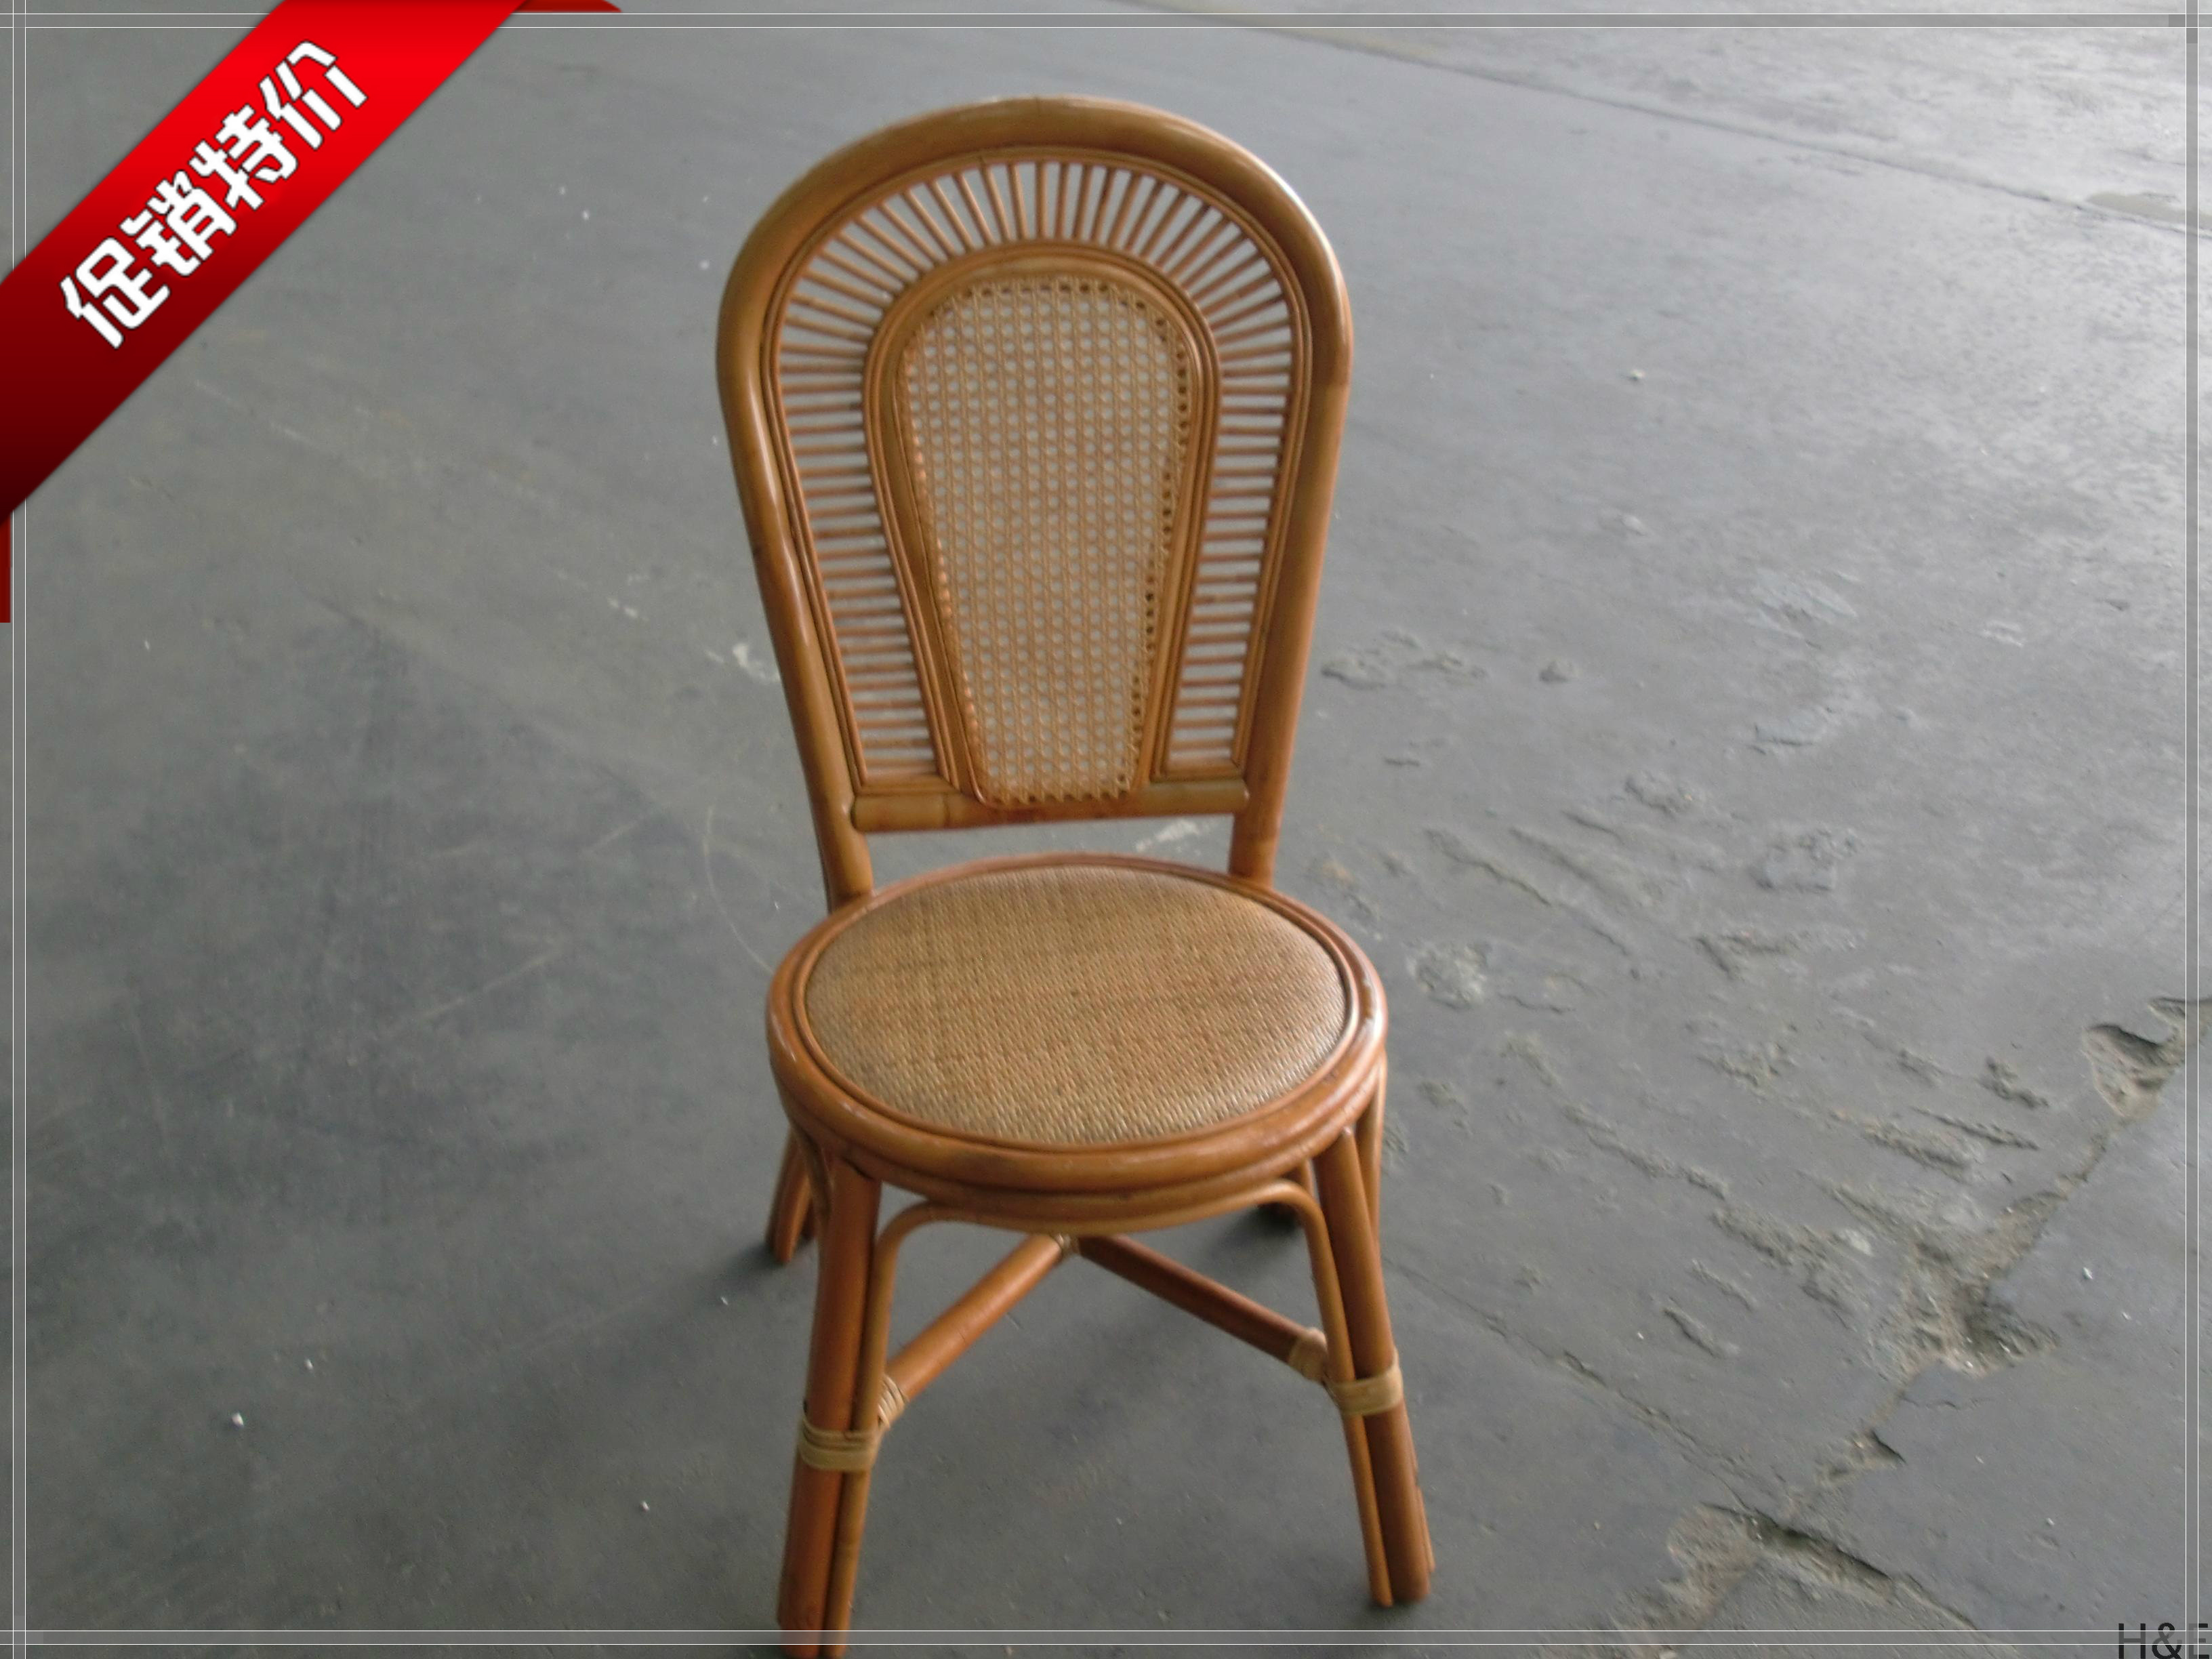 Sun Deck Chairs Craft Furniture Chair Leisure Computer Stylish Office Hotel  Sets In Hotel Chairs From Furniture On Aliexpress.com | Alibaba Group